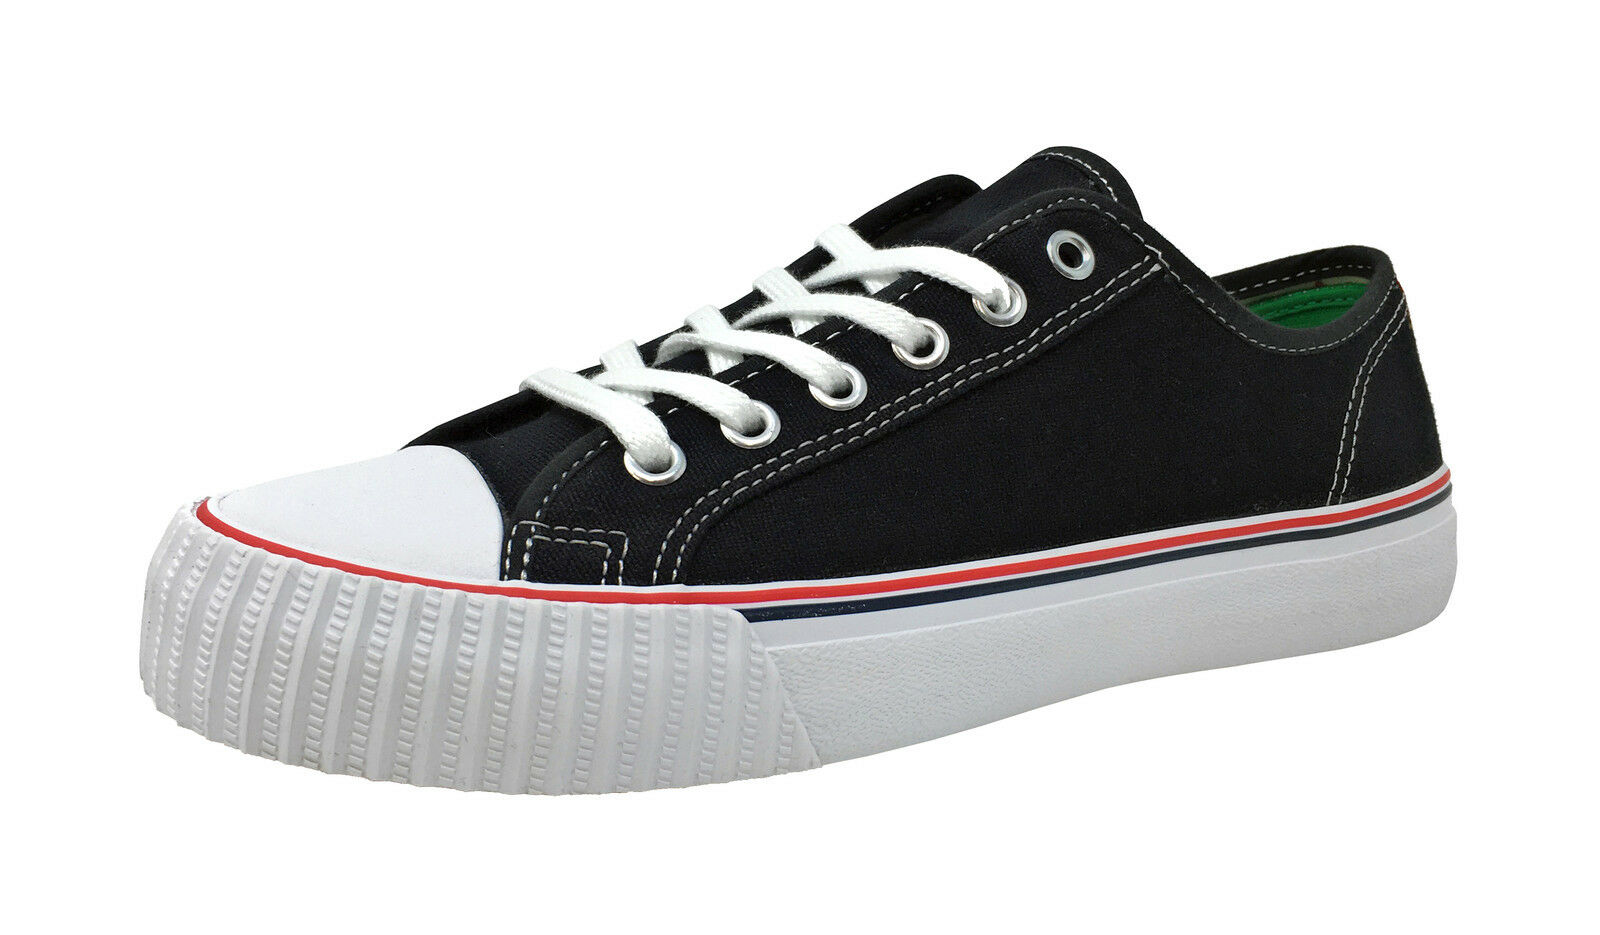 PF Flyers Men's shoes Center Low MC2002BL - Black White